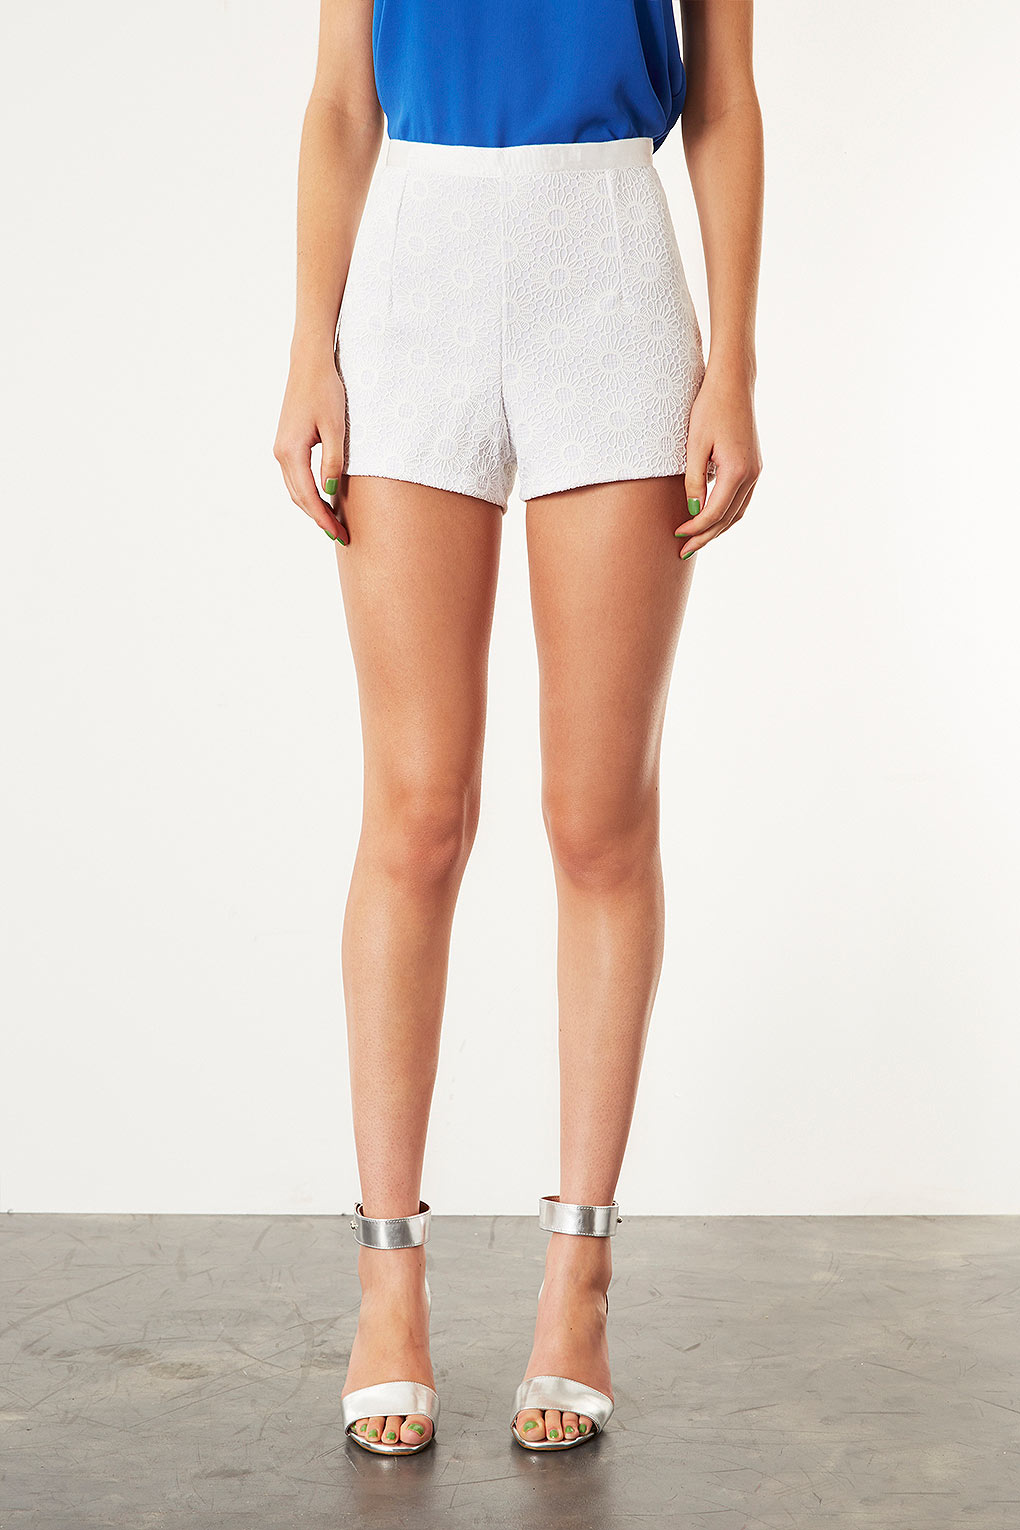 Topshop Lace High Waisted Shorts in Natural | Lyst